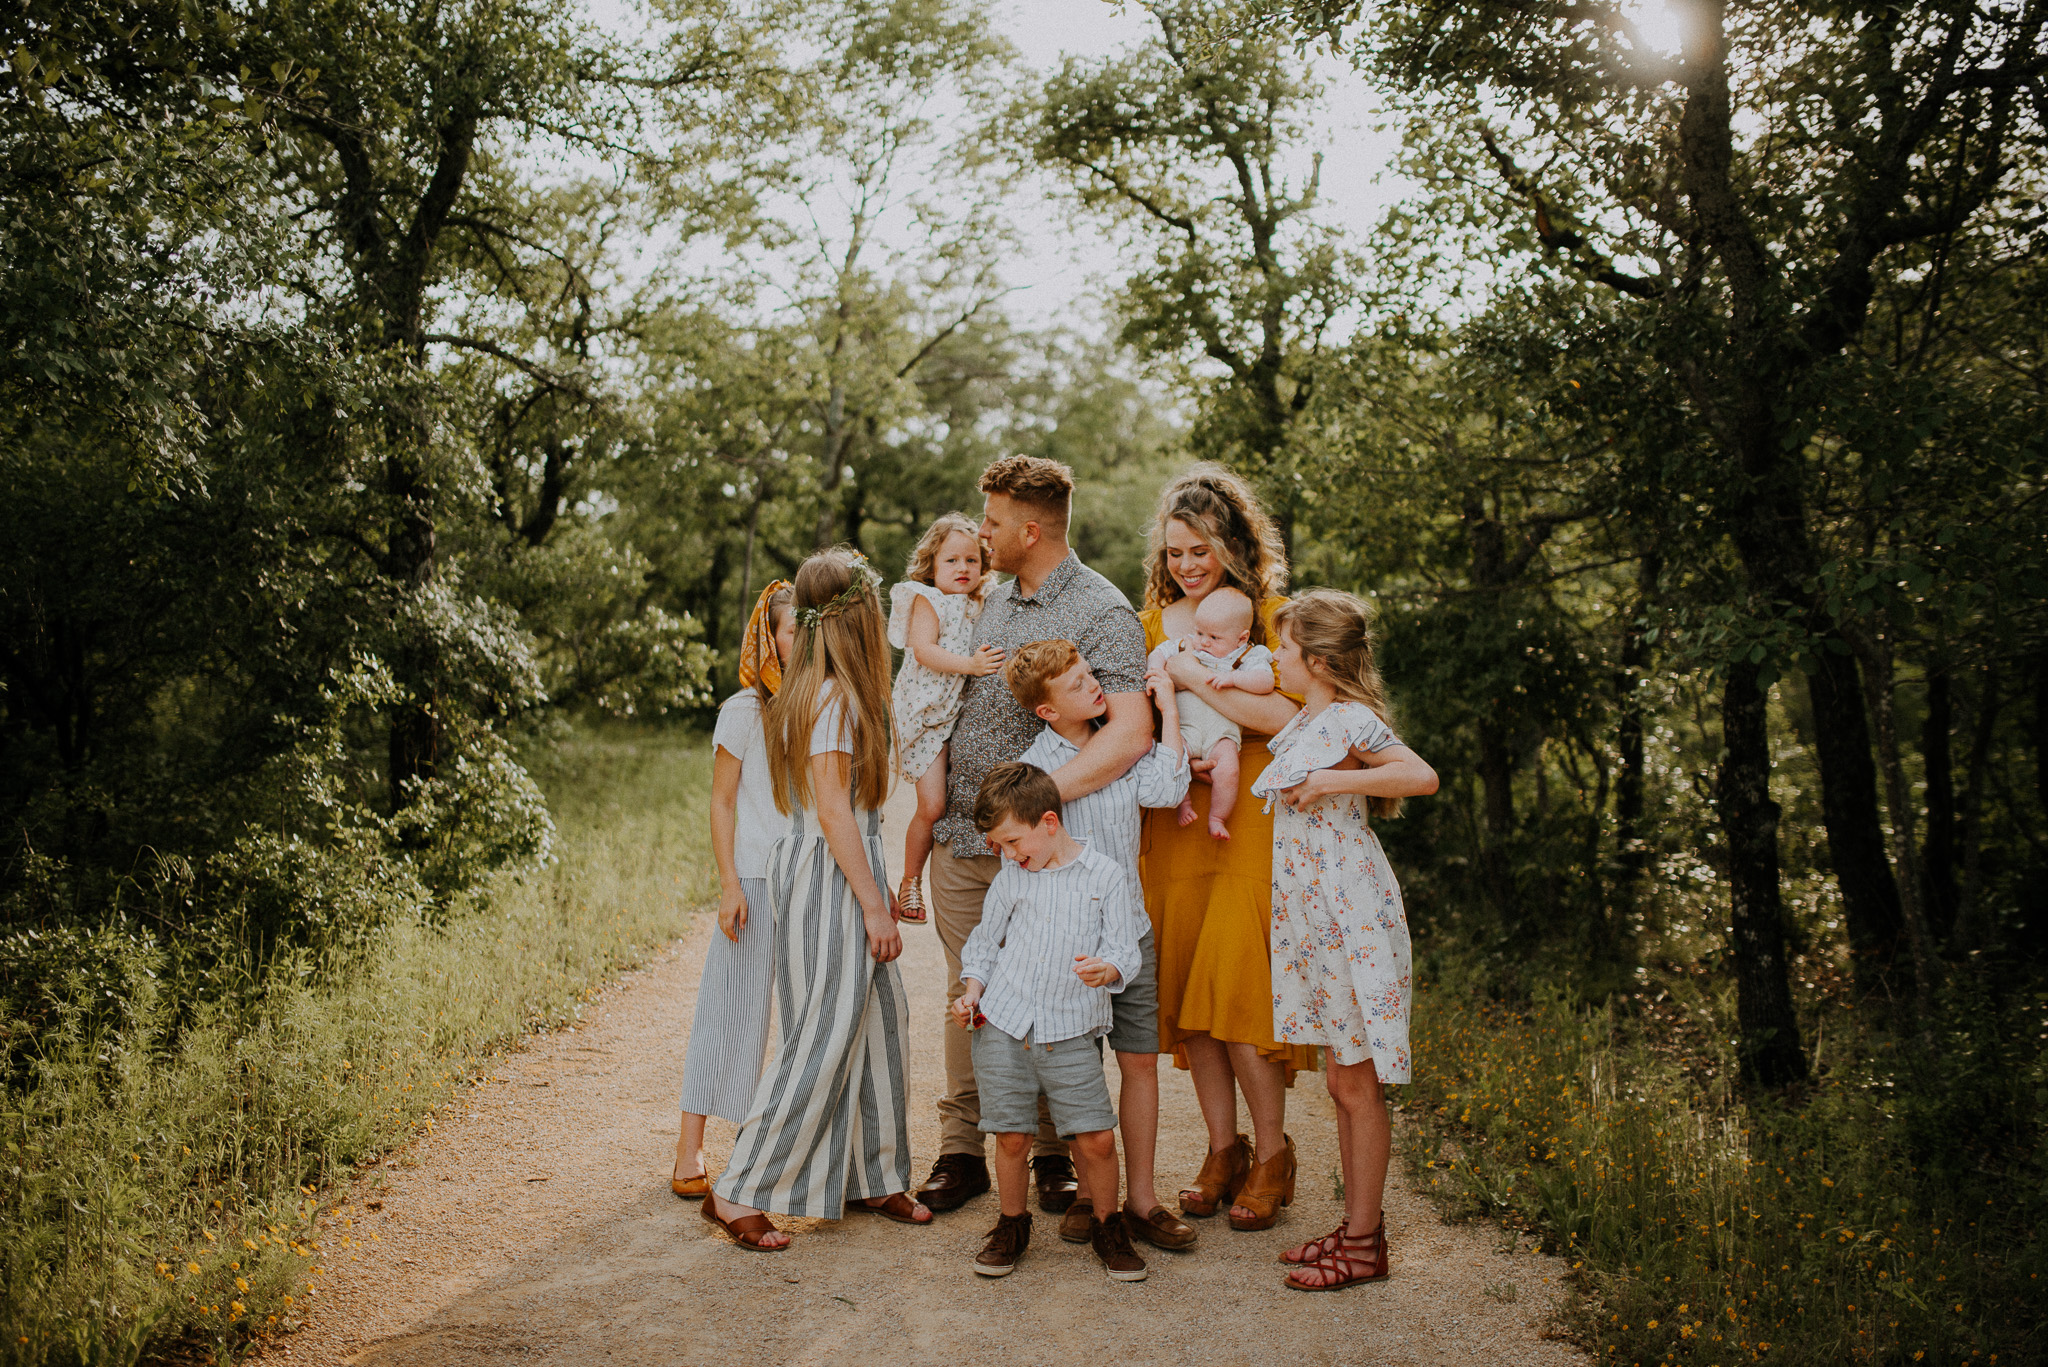 Dallas-fort-worth-lifestyle-family-photographer-eagle-mountain-park-fort-worth-texas-17